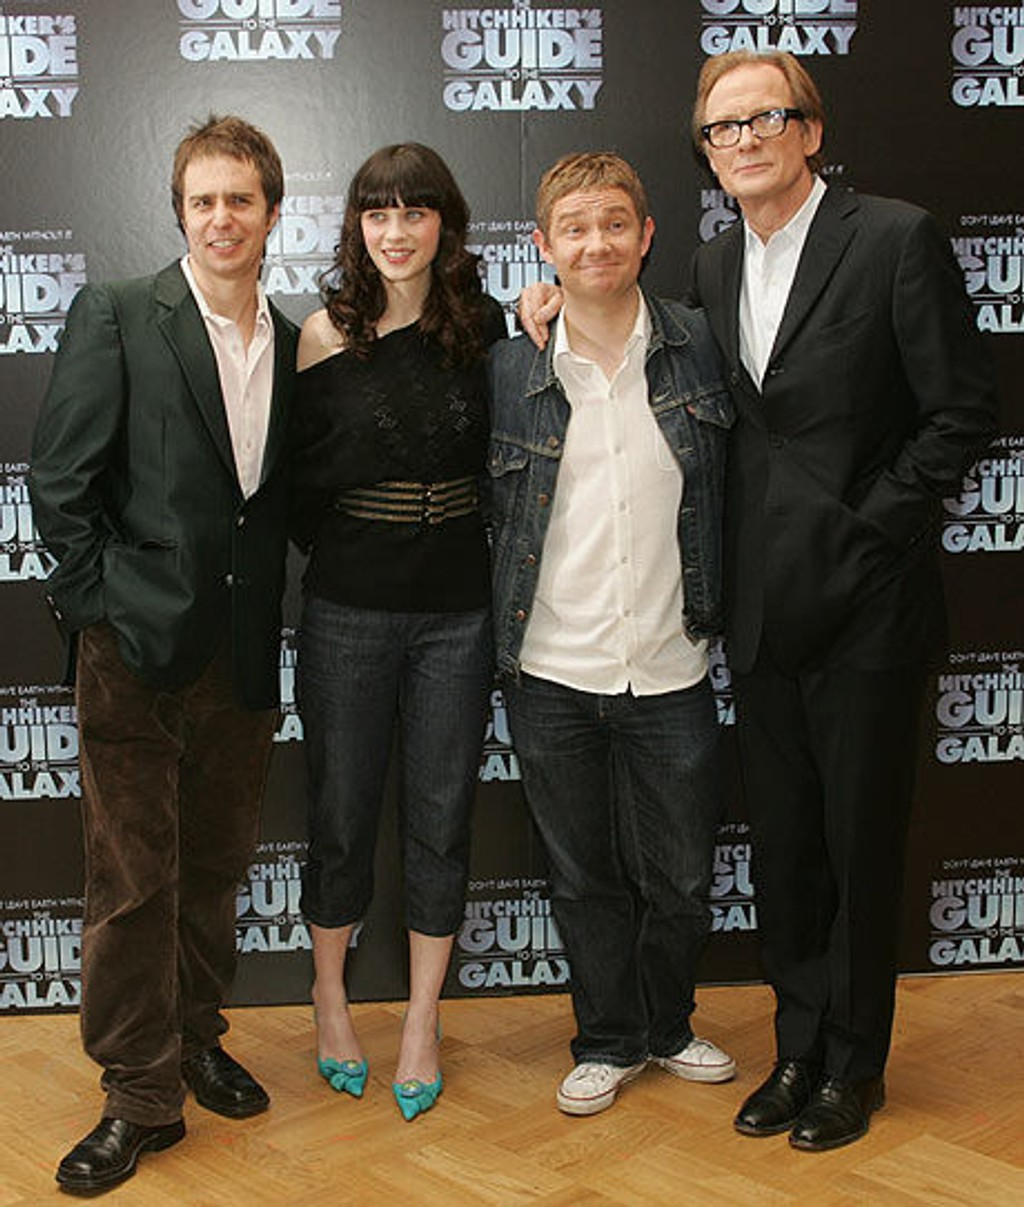 Sam Rockwell, Zooey Deschanel, Martin Freeman og Bill Nighy.